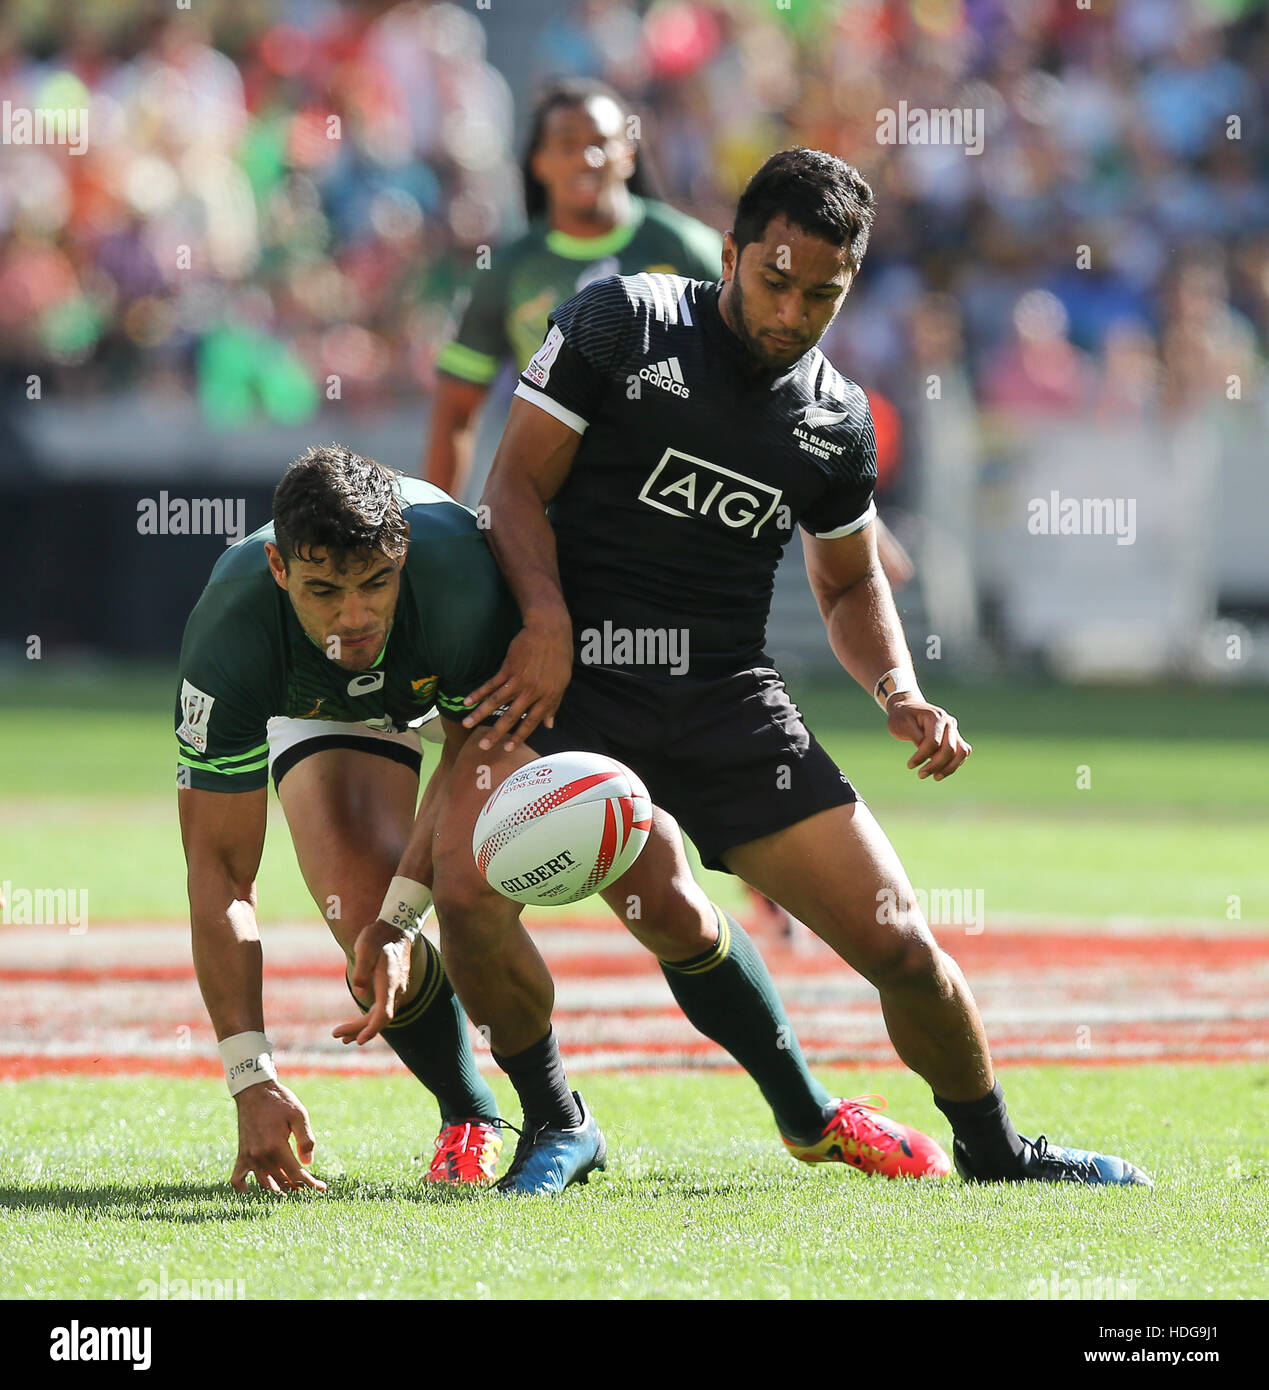 Green Rugby Player: Springbok Rugby Players Stock Photos & Springbok Rugby